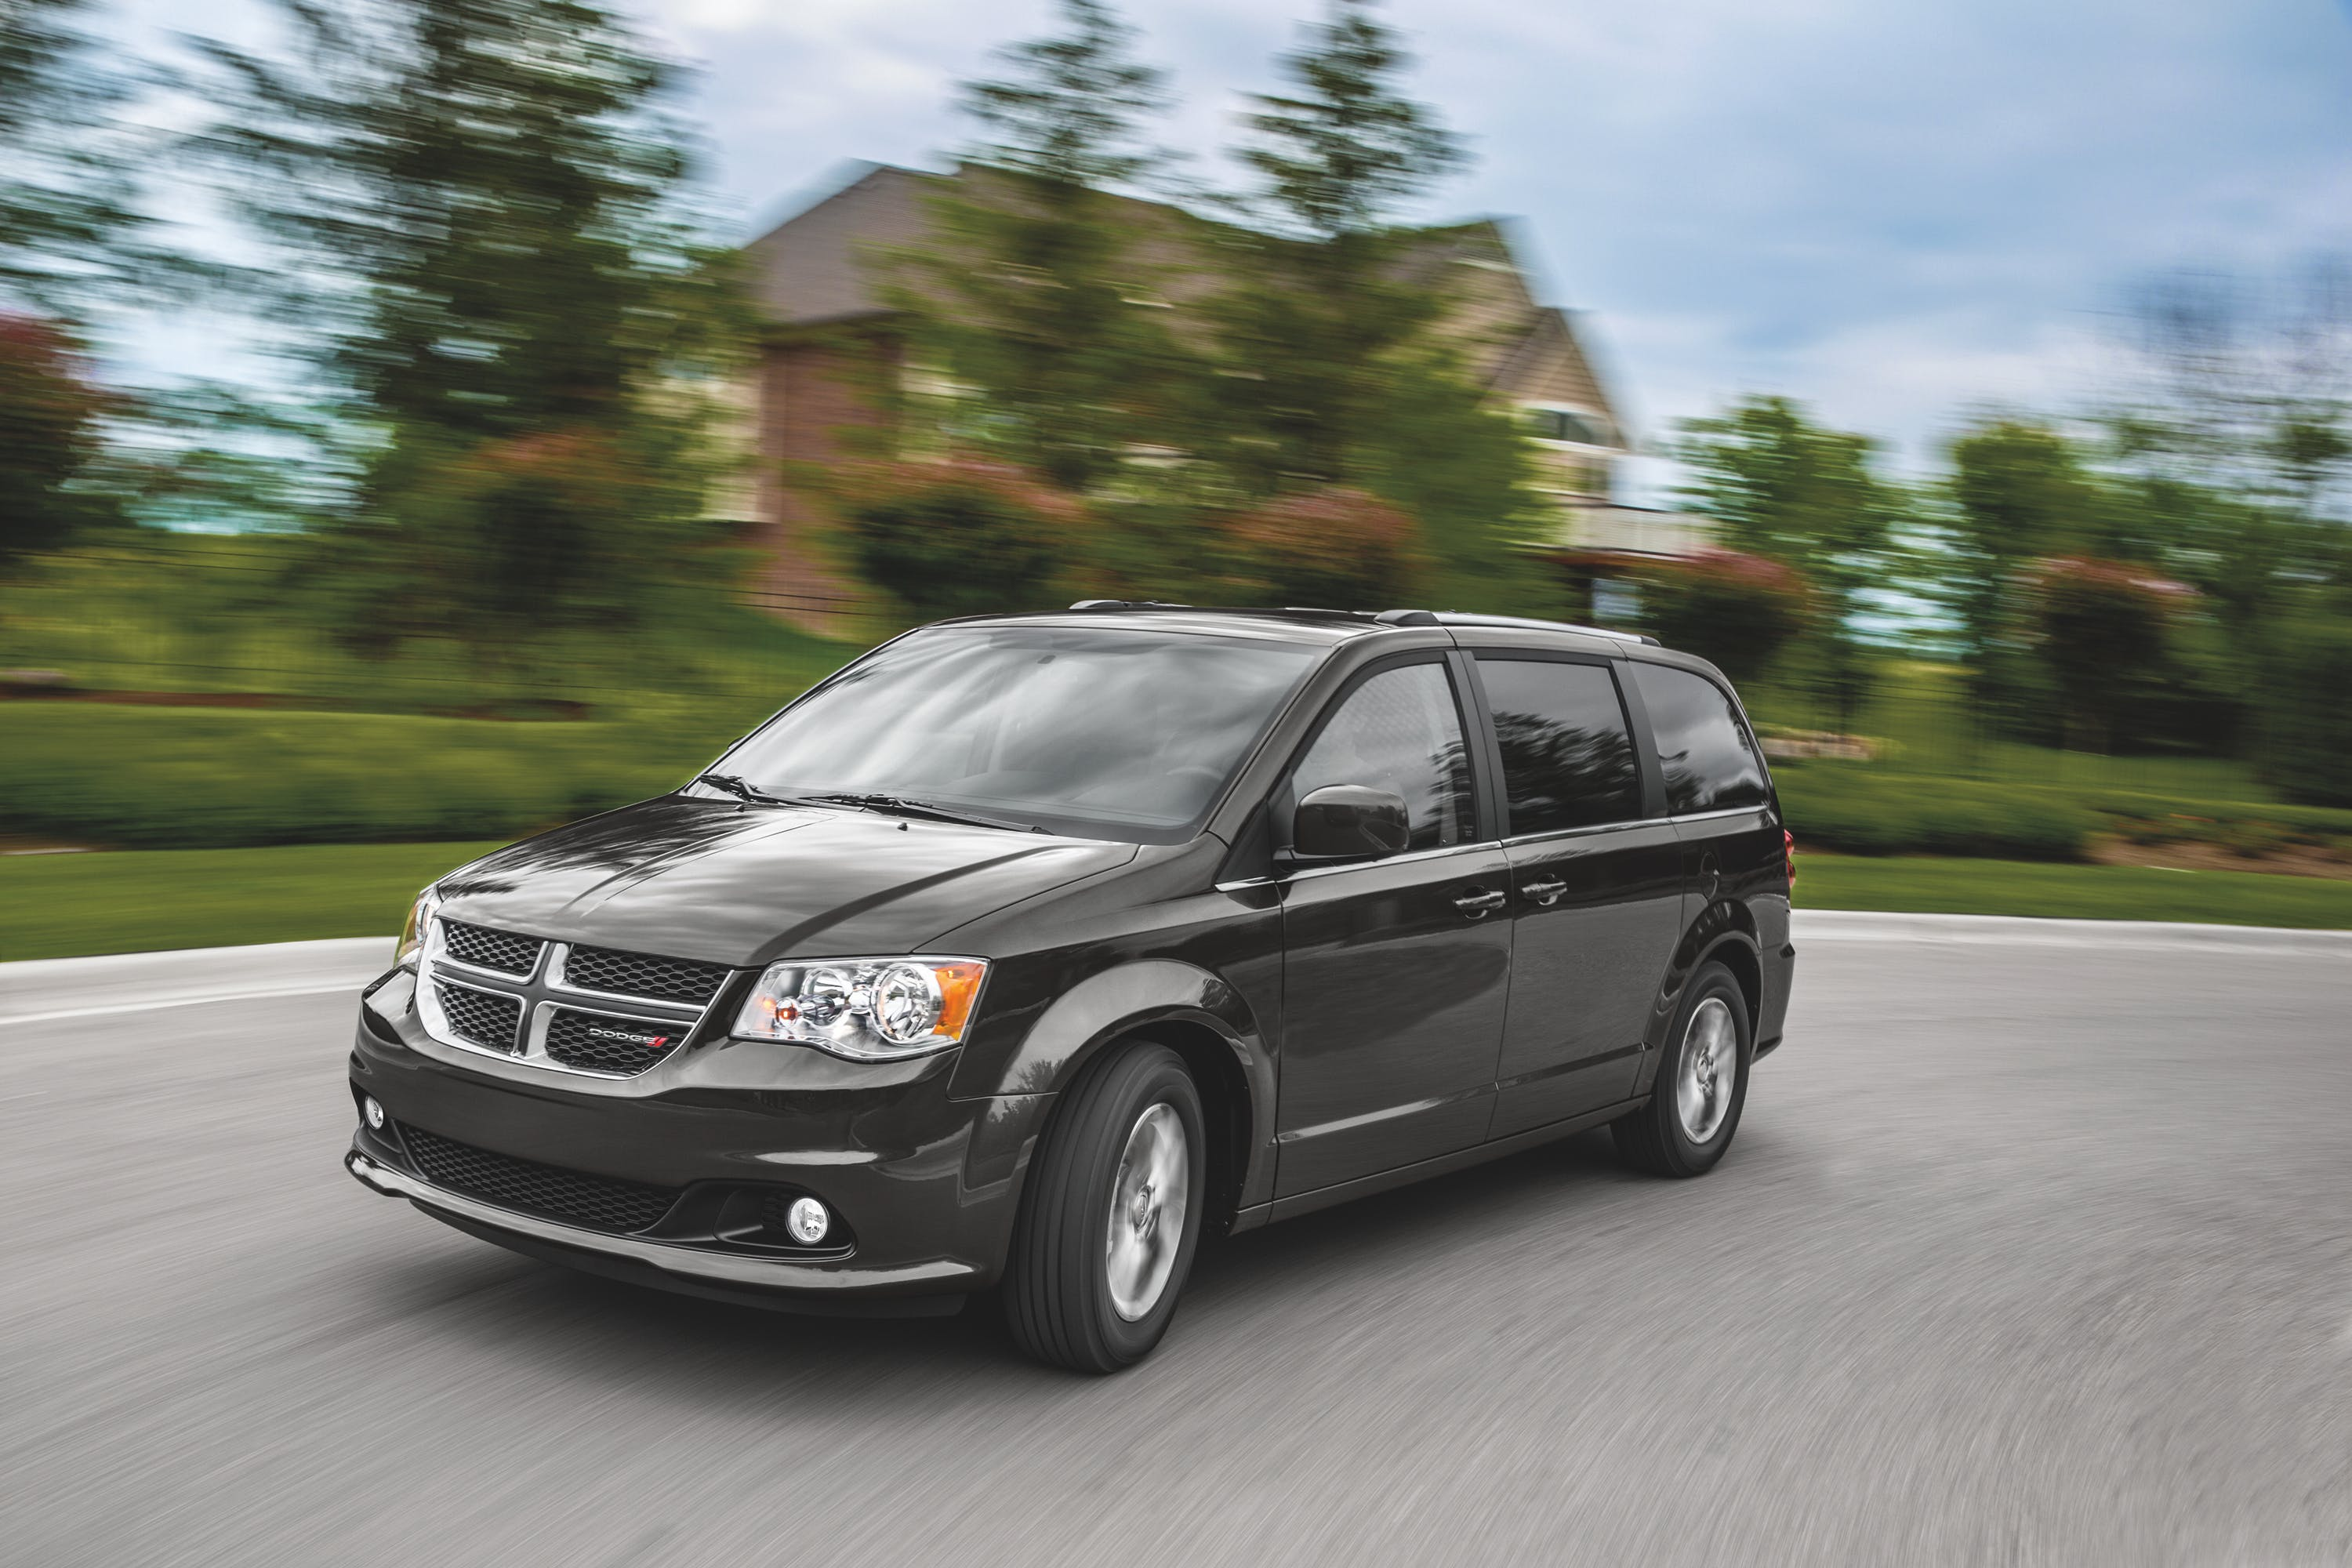 Car Recall: Dodge Grand Caravan Seatbelt Issue